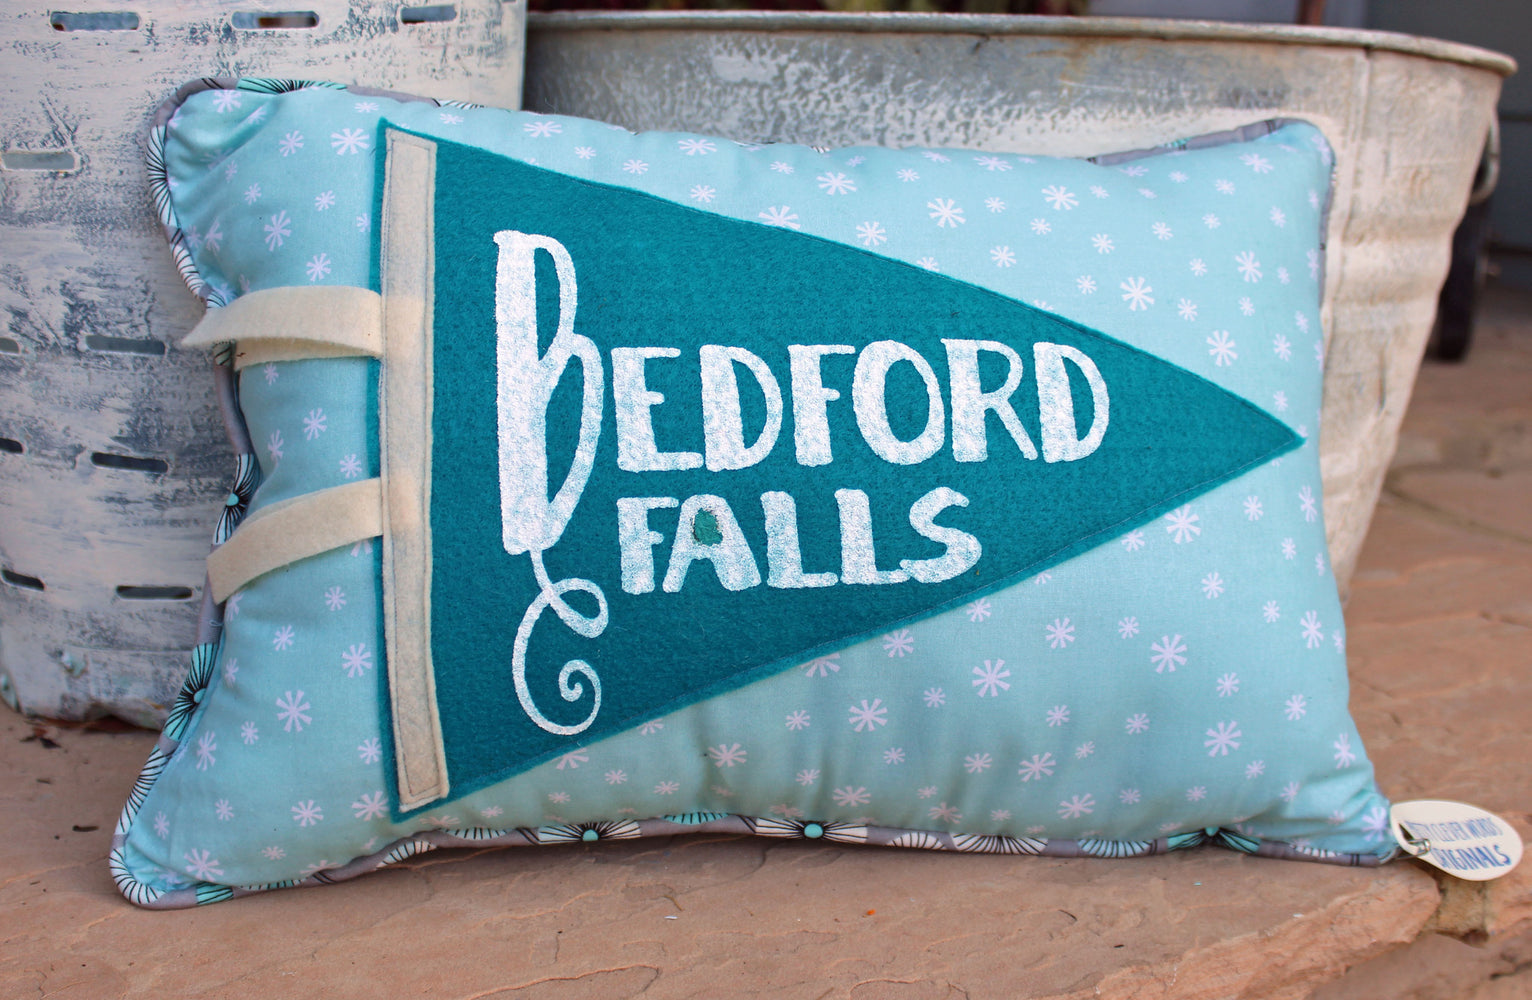 vintage style pennant pillow - Bedford Falls